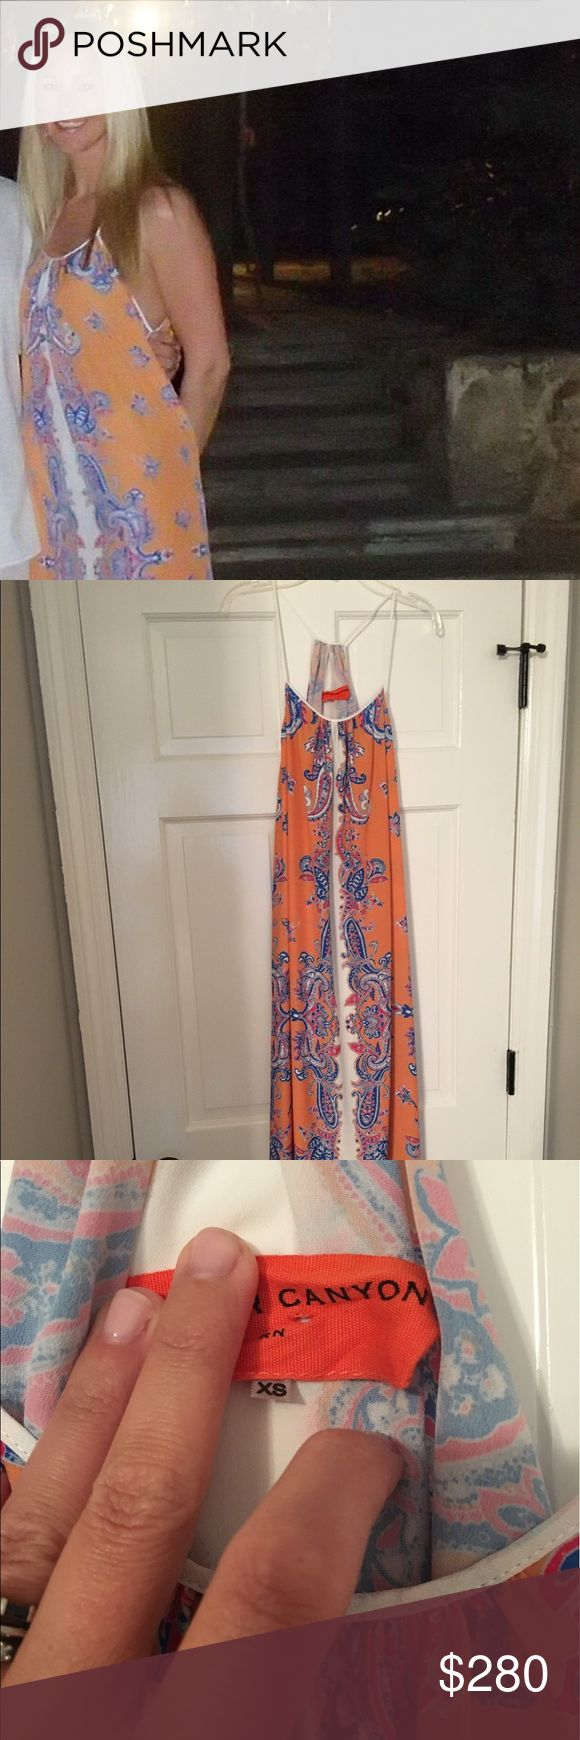 Used Clover Canyon Maxi XS No Flaws Used Clover Canyon Maxi XS No Flaws Clover Canyon Dresses Maxi